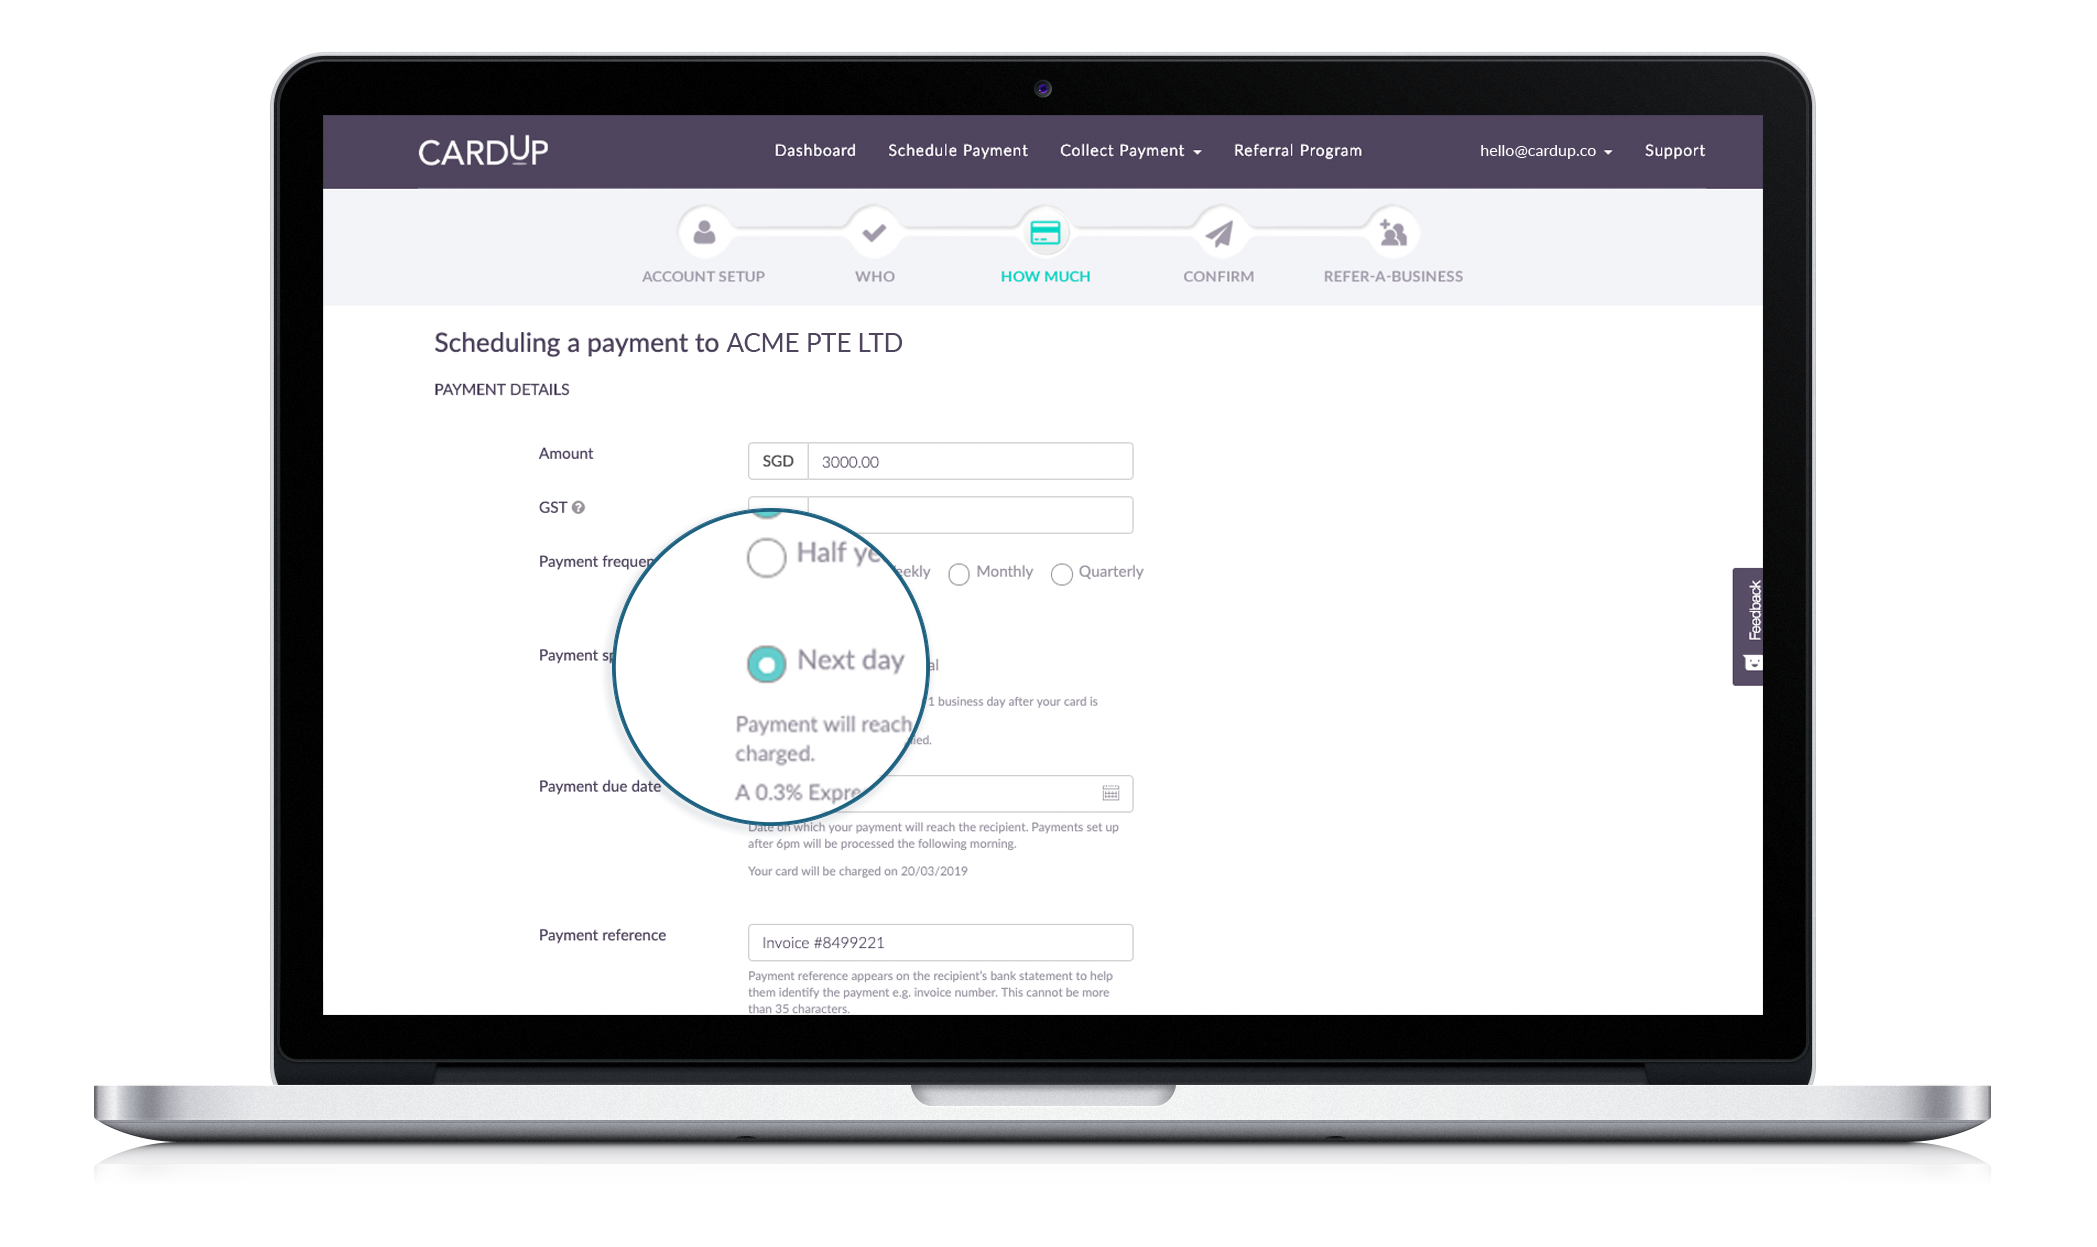 How to schedule next day payments on CardUp